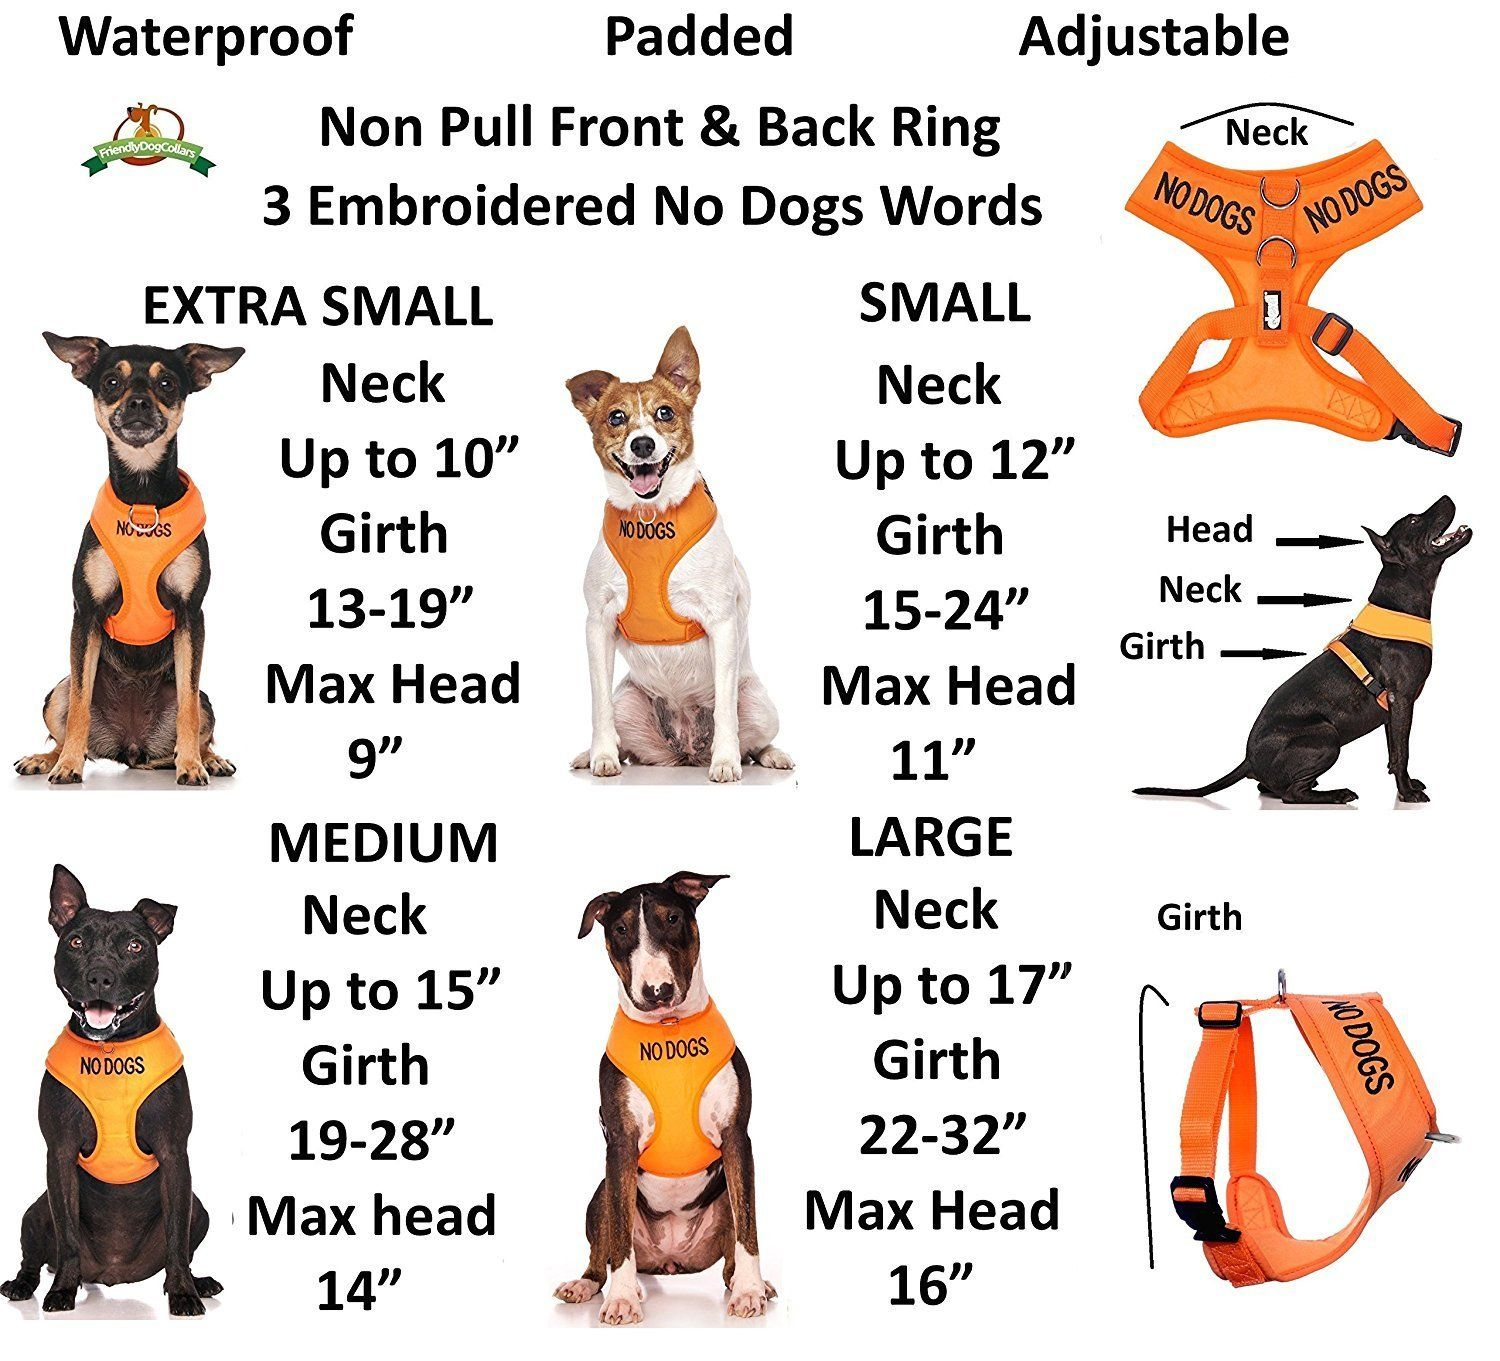 No Dogs Not Good With Other Dogs Orange Color Coded Non Pull